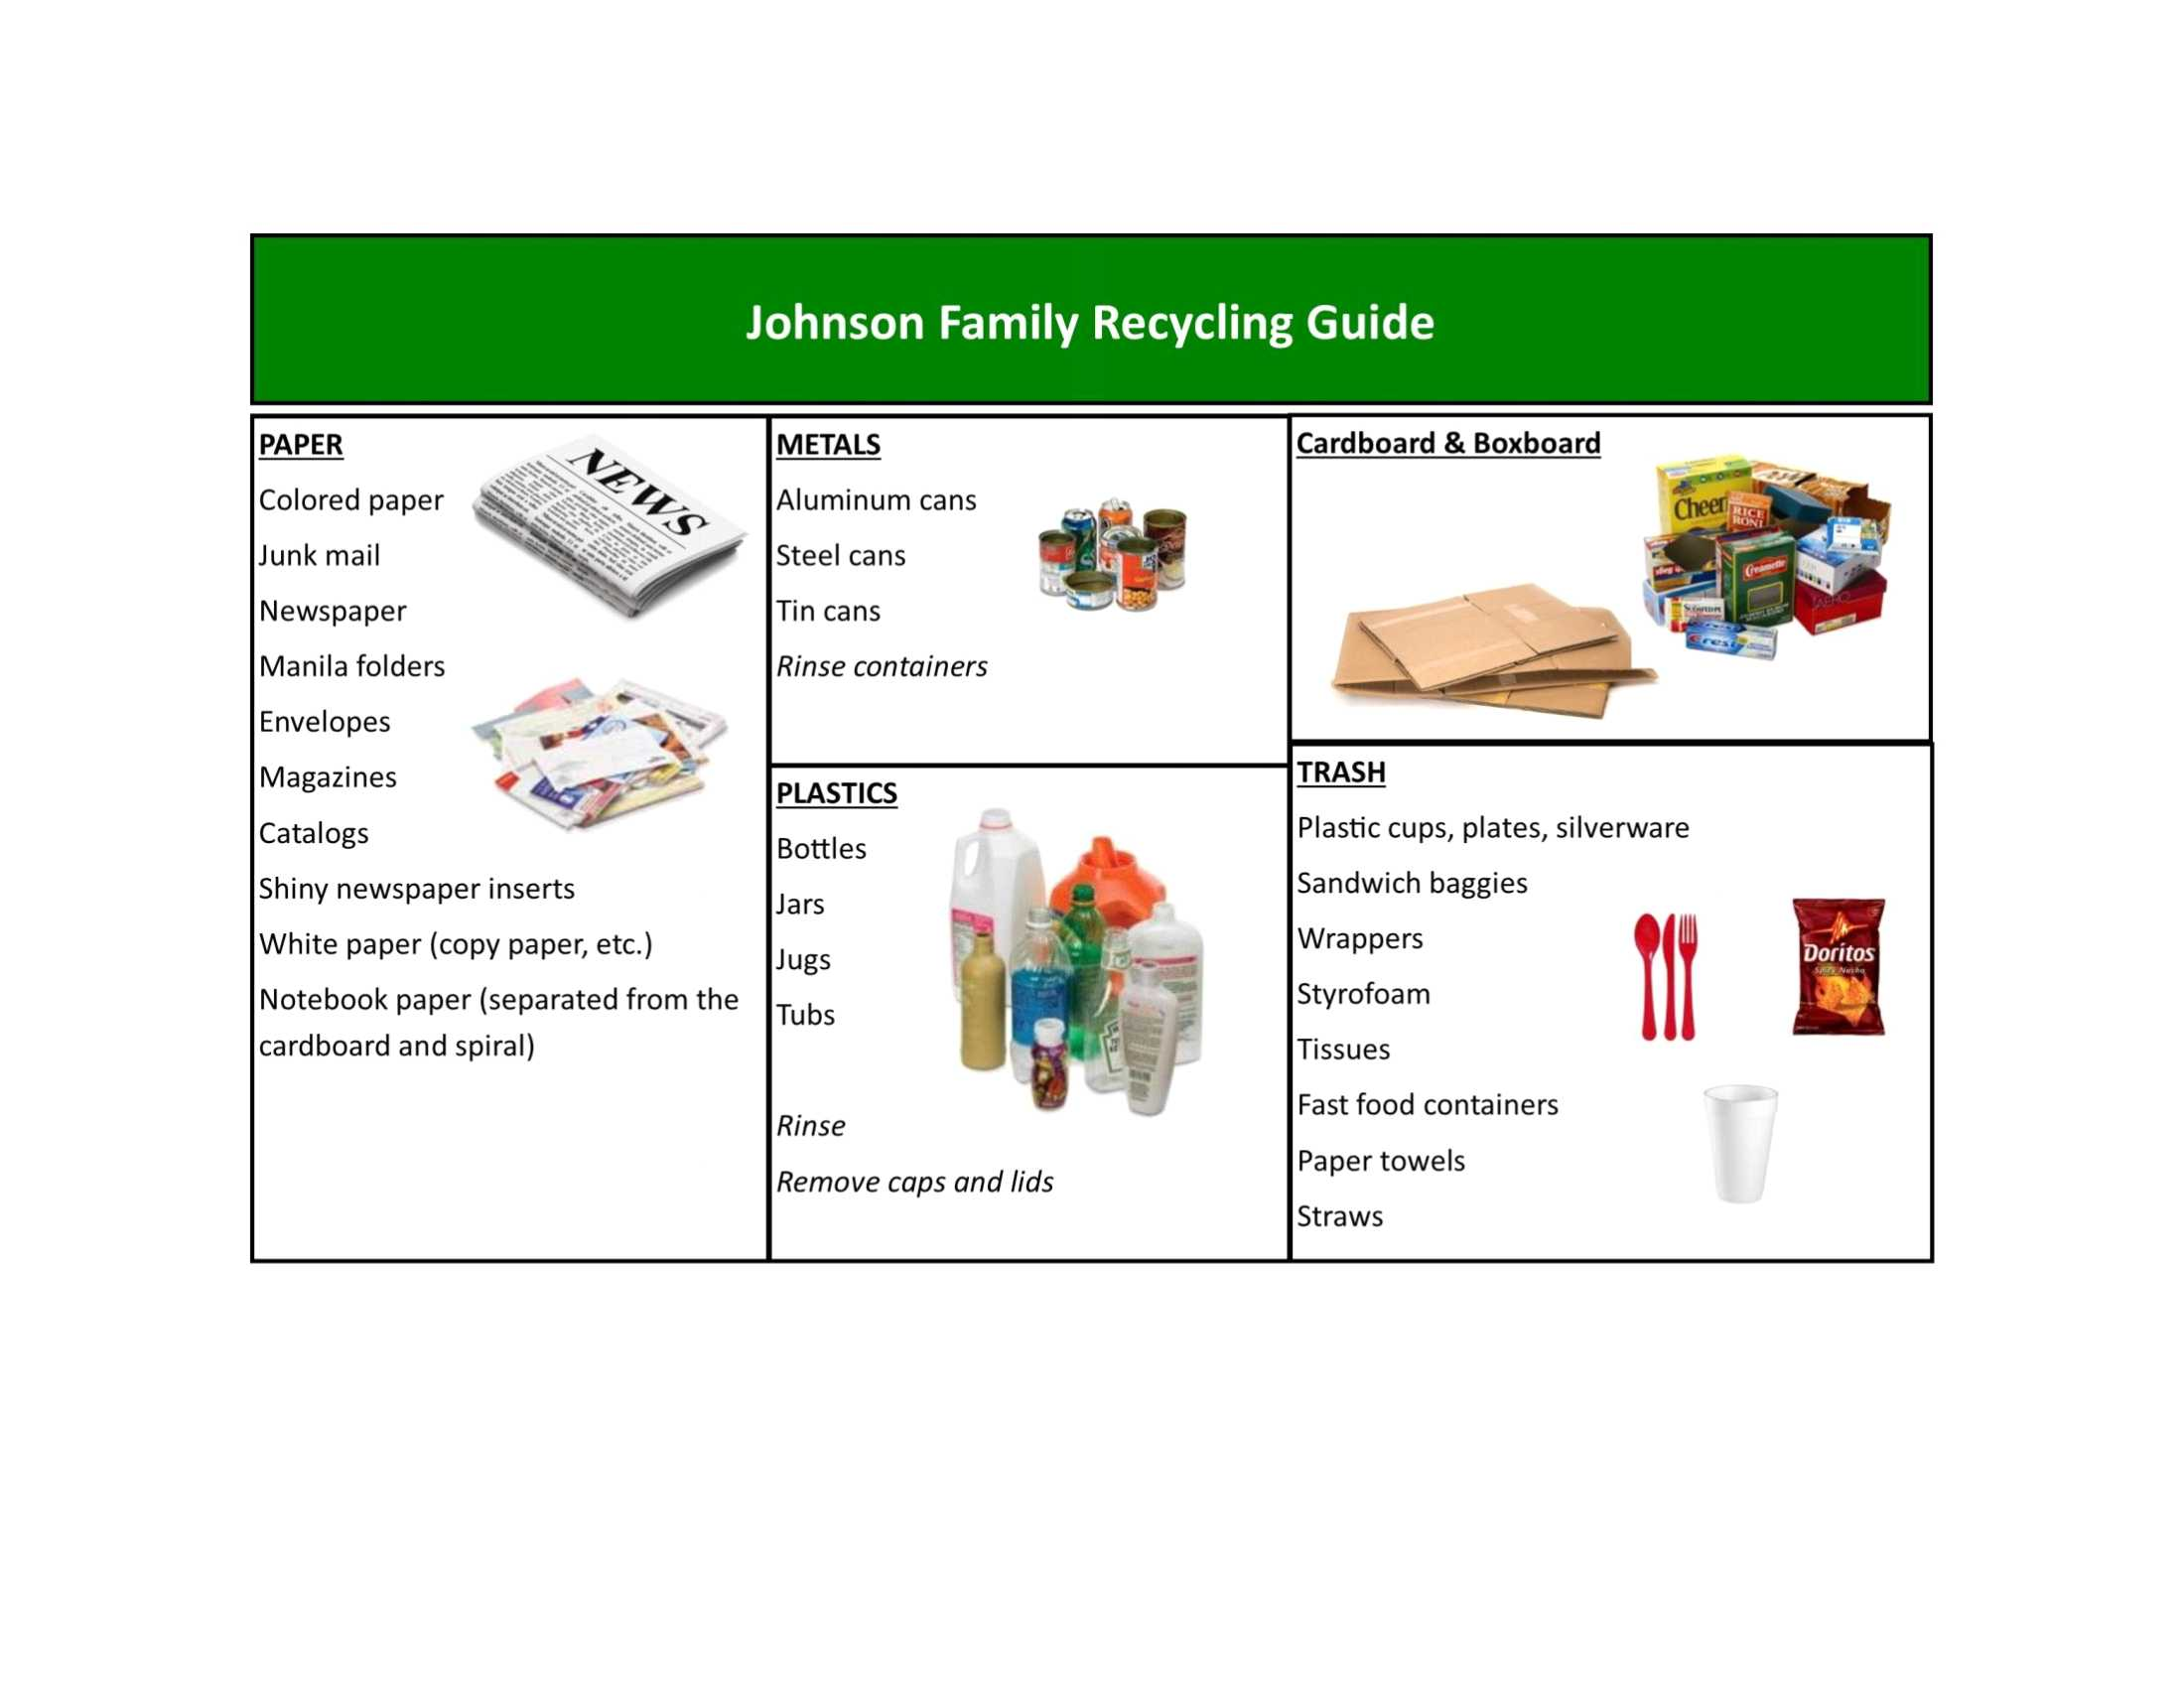 Johnson Family Recycling Guide 2